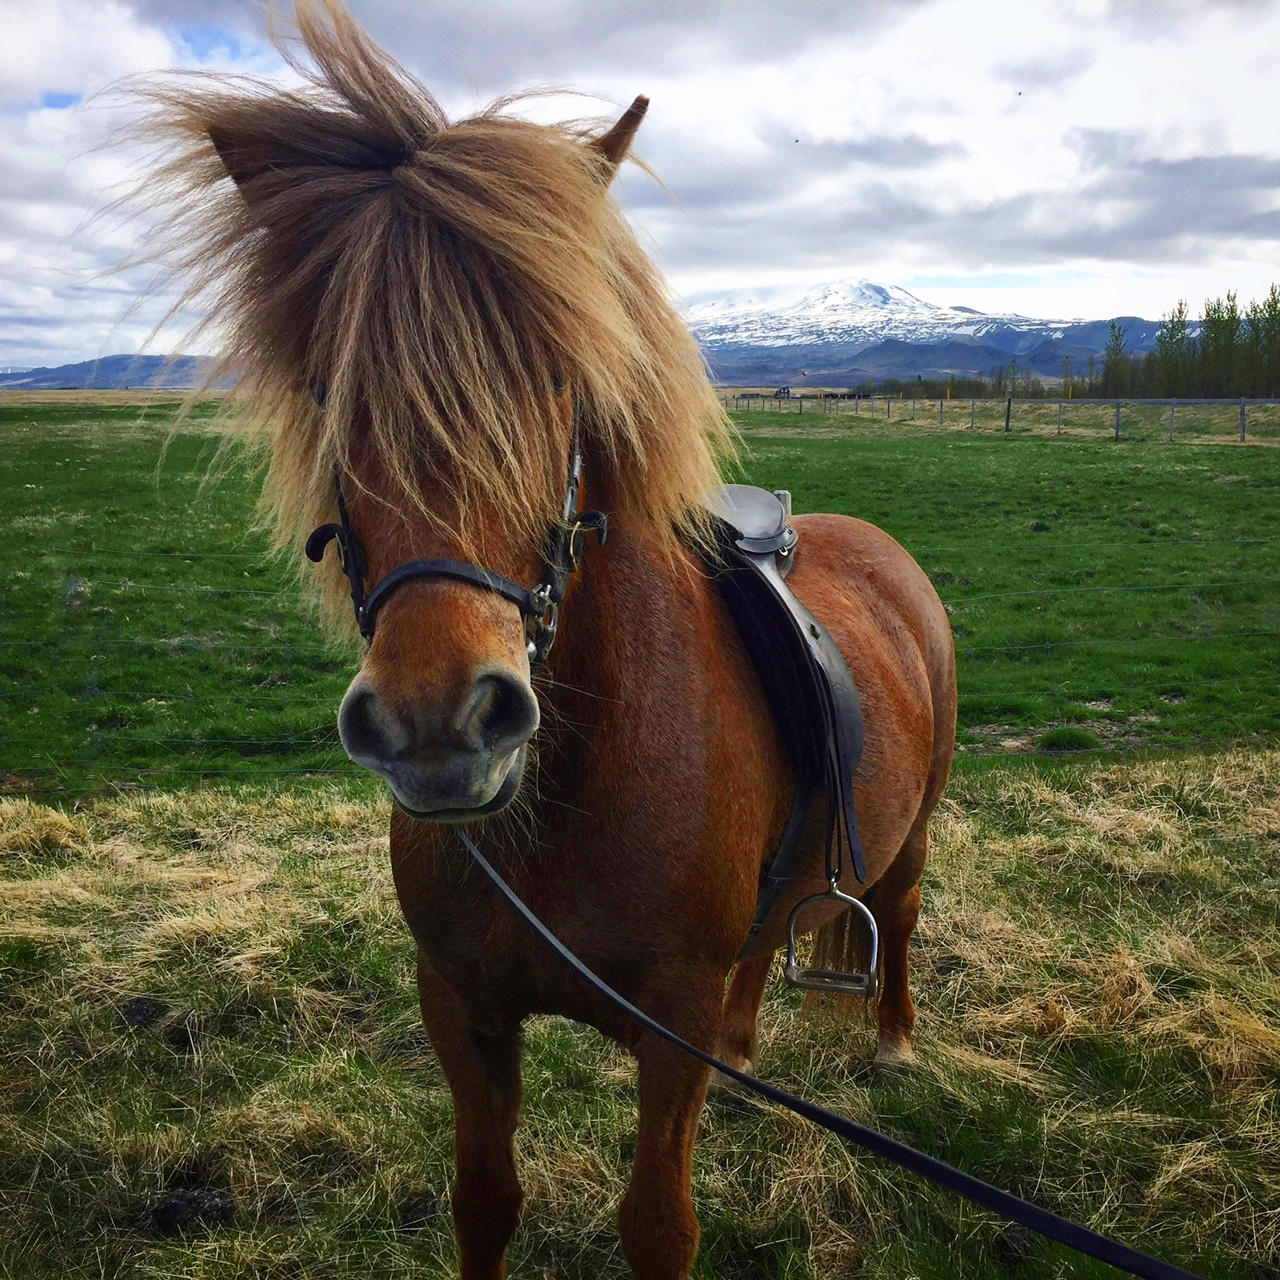 My adorable Icelandic horse Gloth, who nearly bucked me two minutes into the ride.